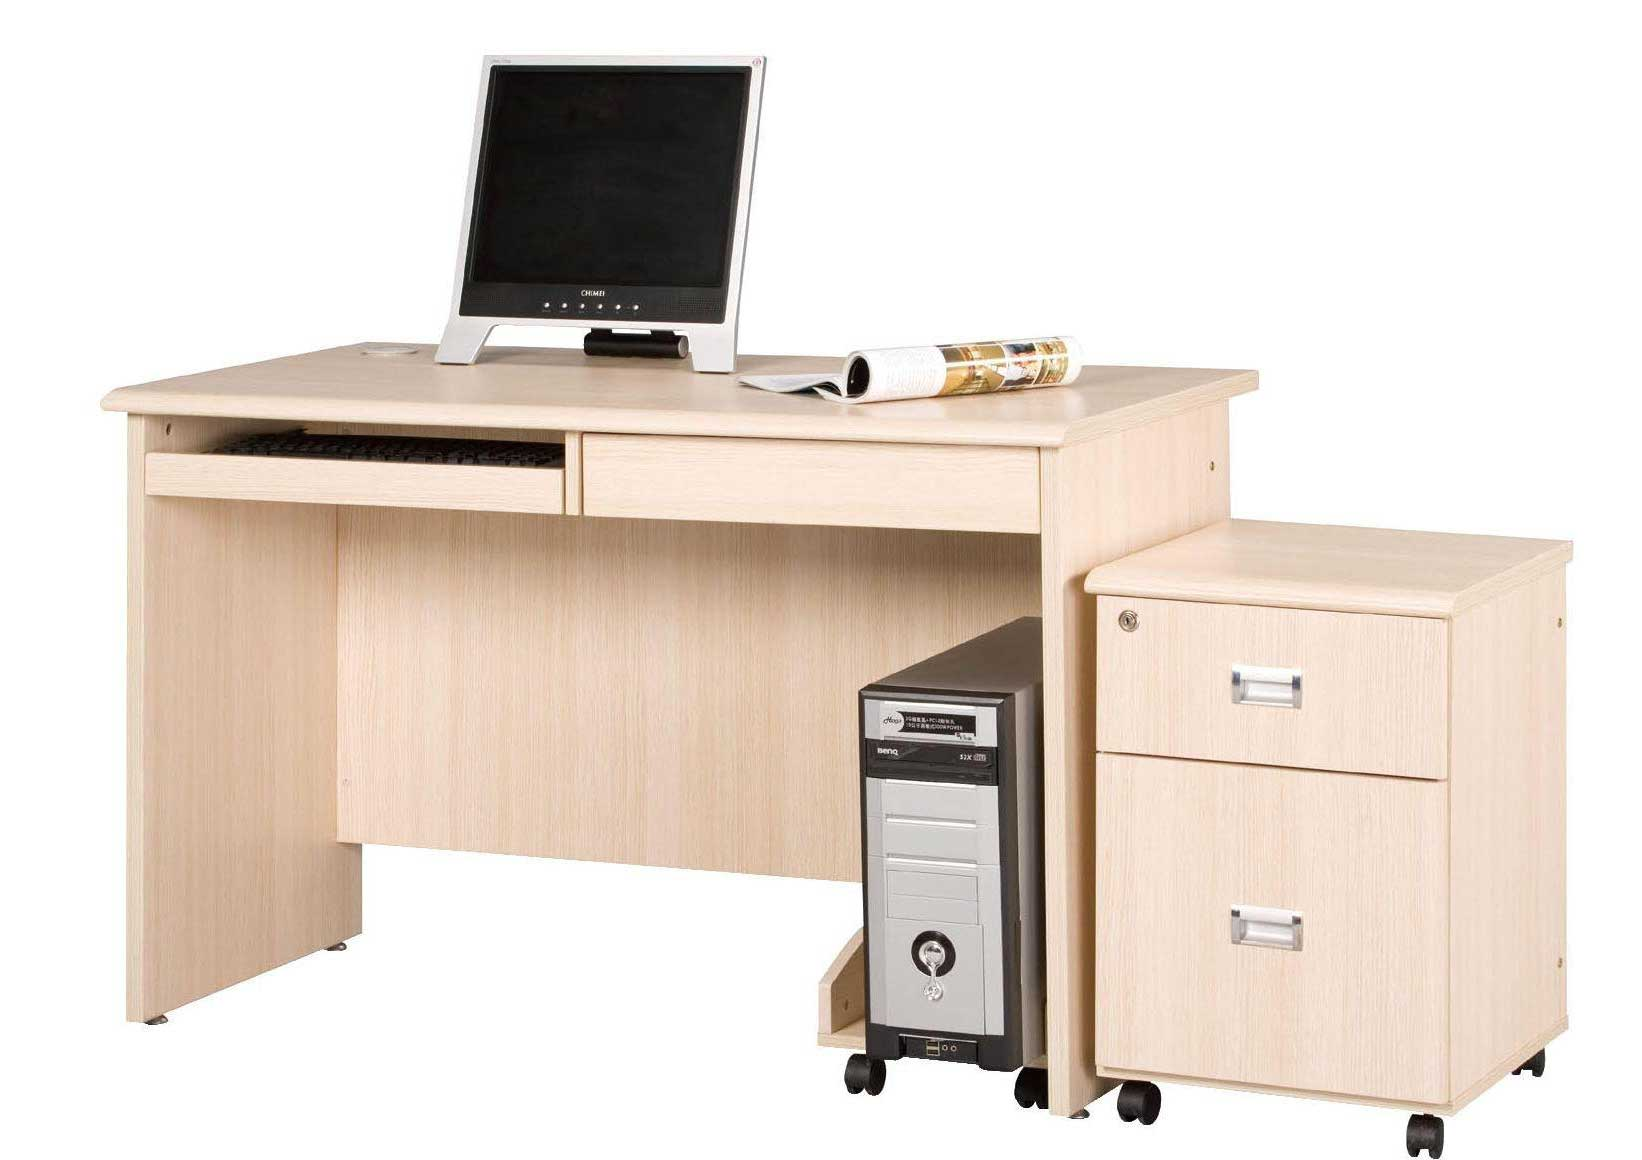 Portable Computer Desk with Storage Cabinet